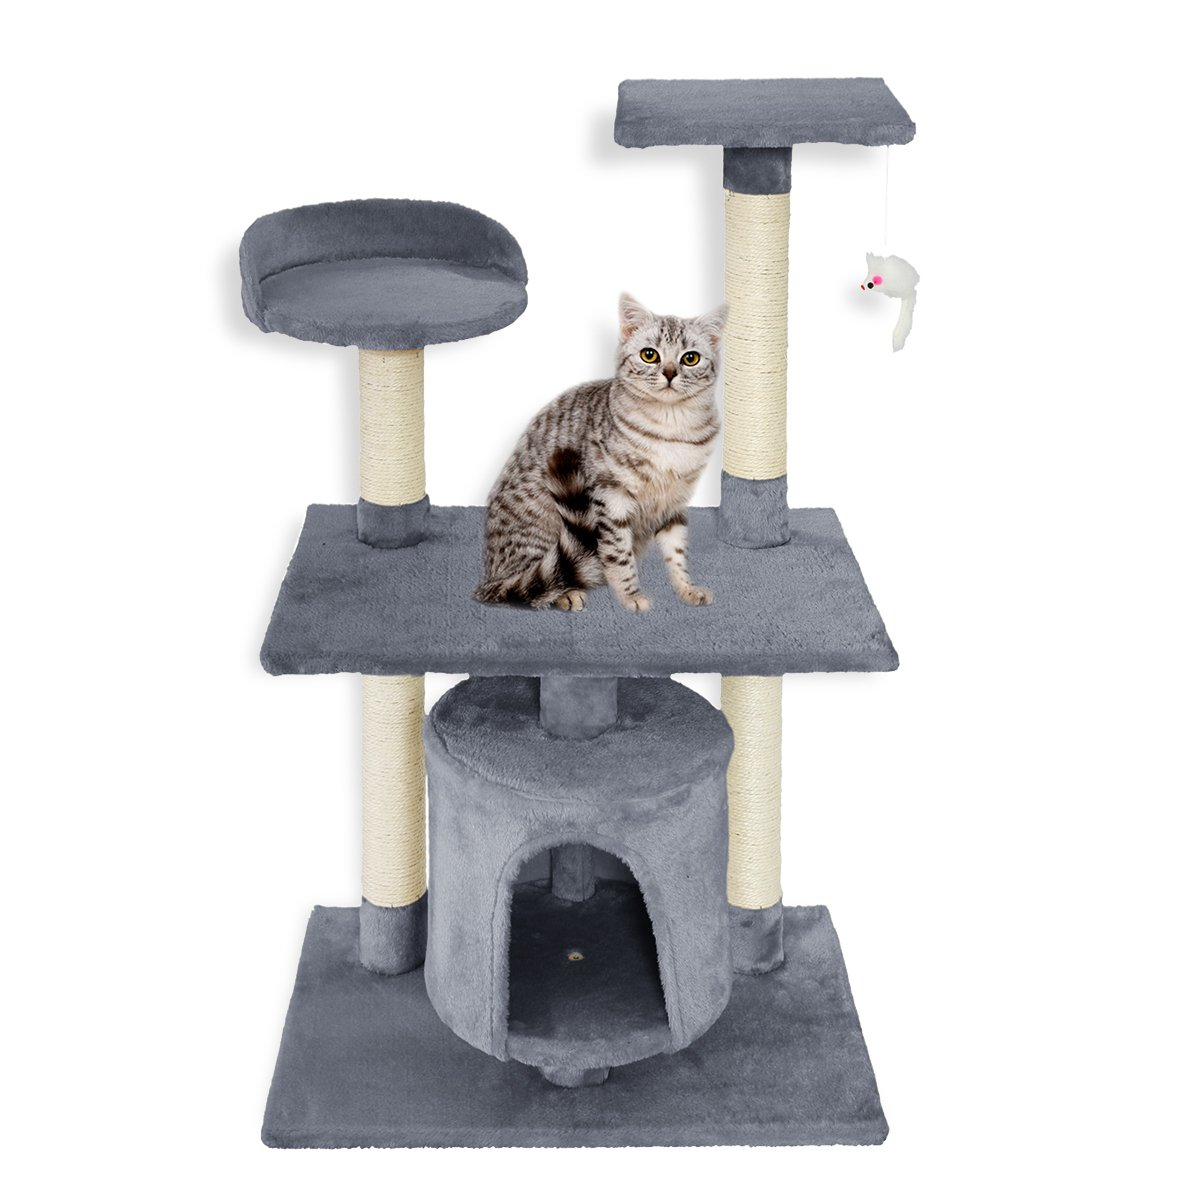 FirstWell Cat Tree Kitty Condo Furniture Kitten Climb Stand with Natural Sisal Ropes Scratching Post House Hanging Toy, 37.5 Inches, Grey, PCT002